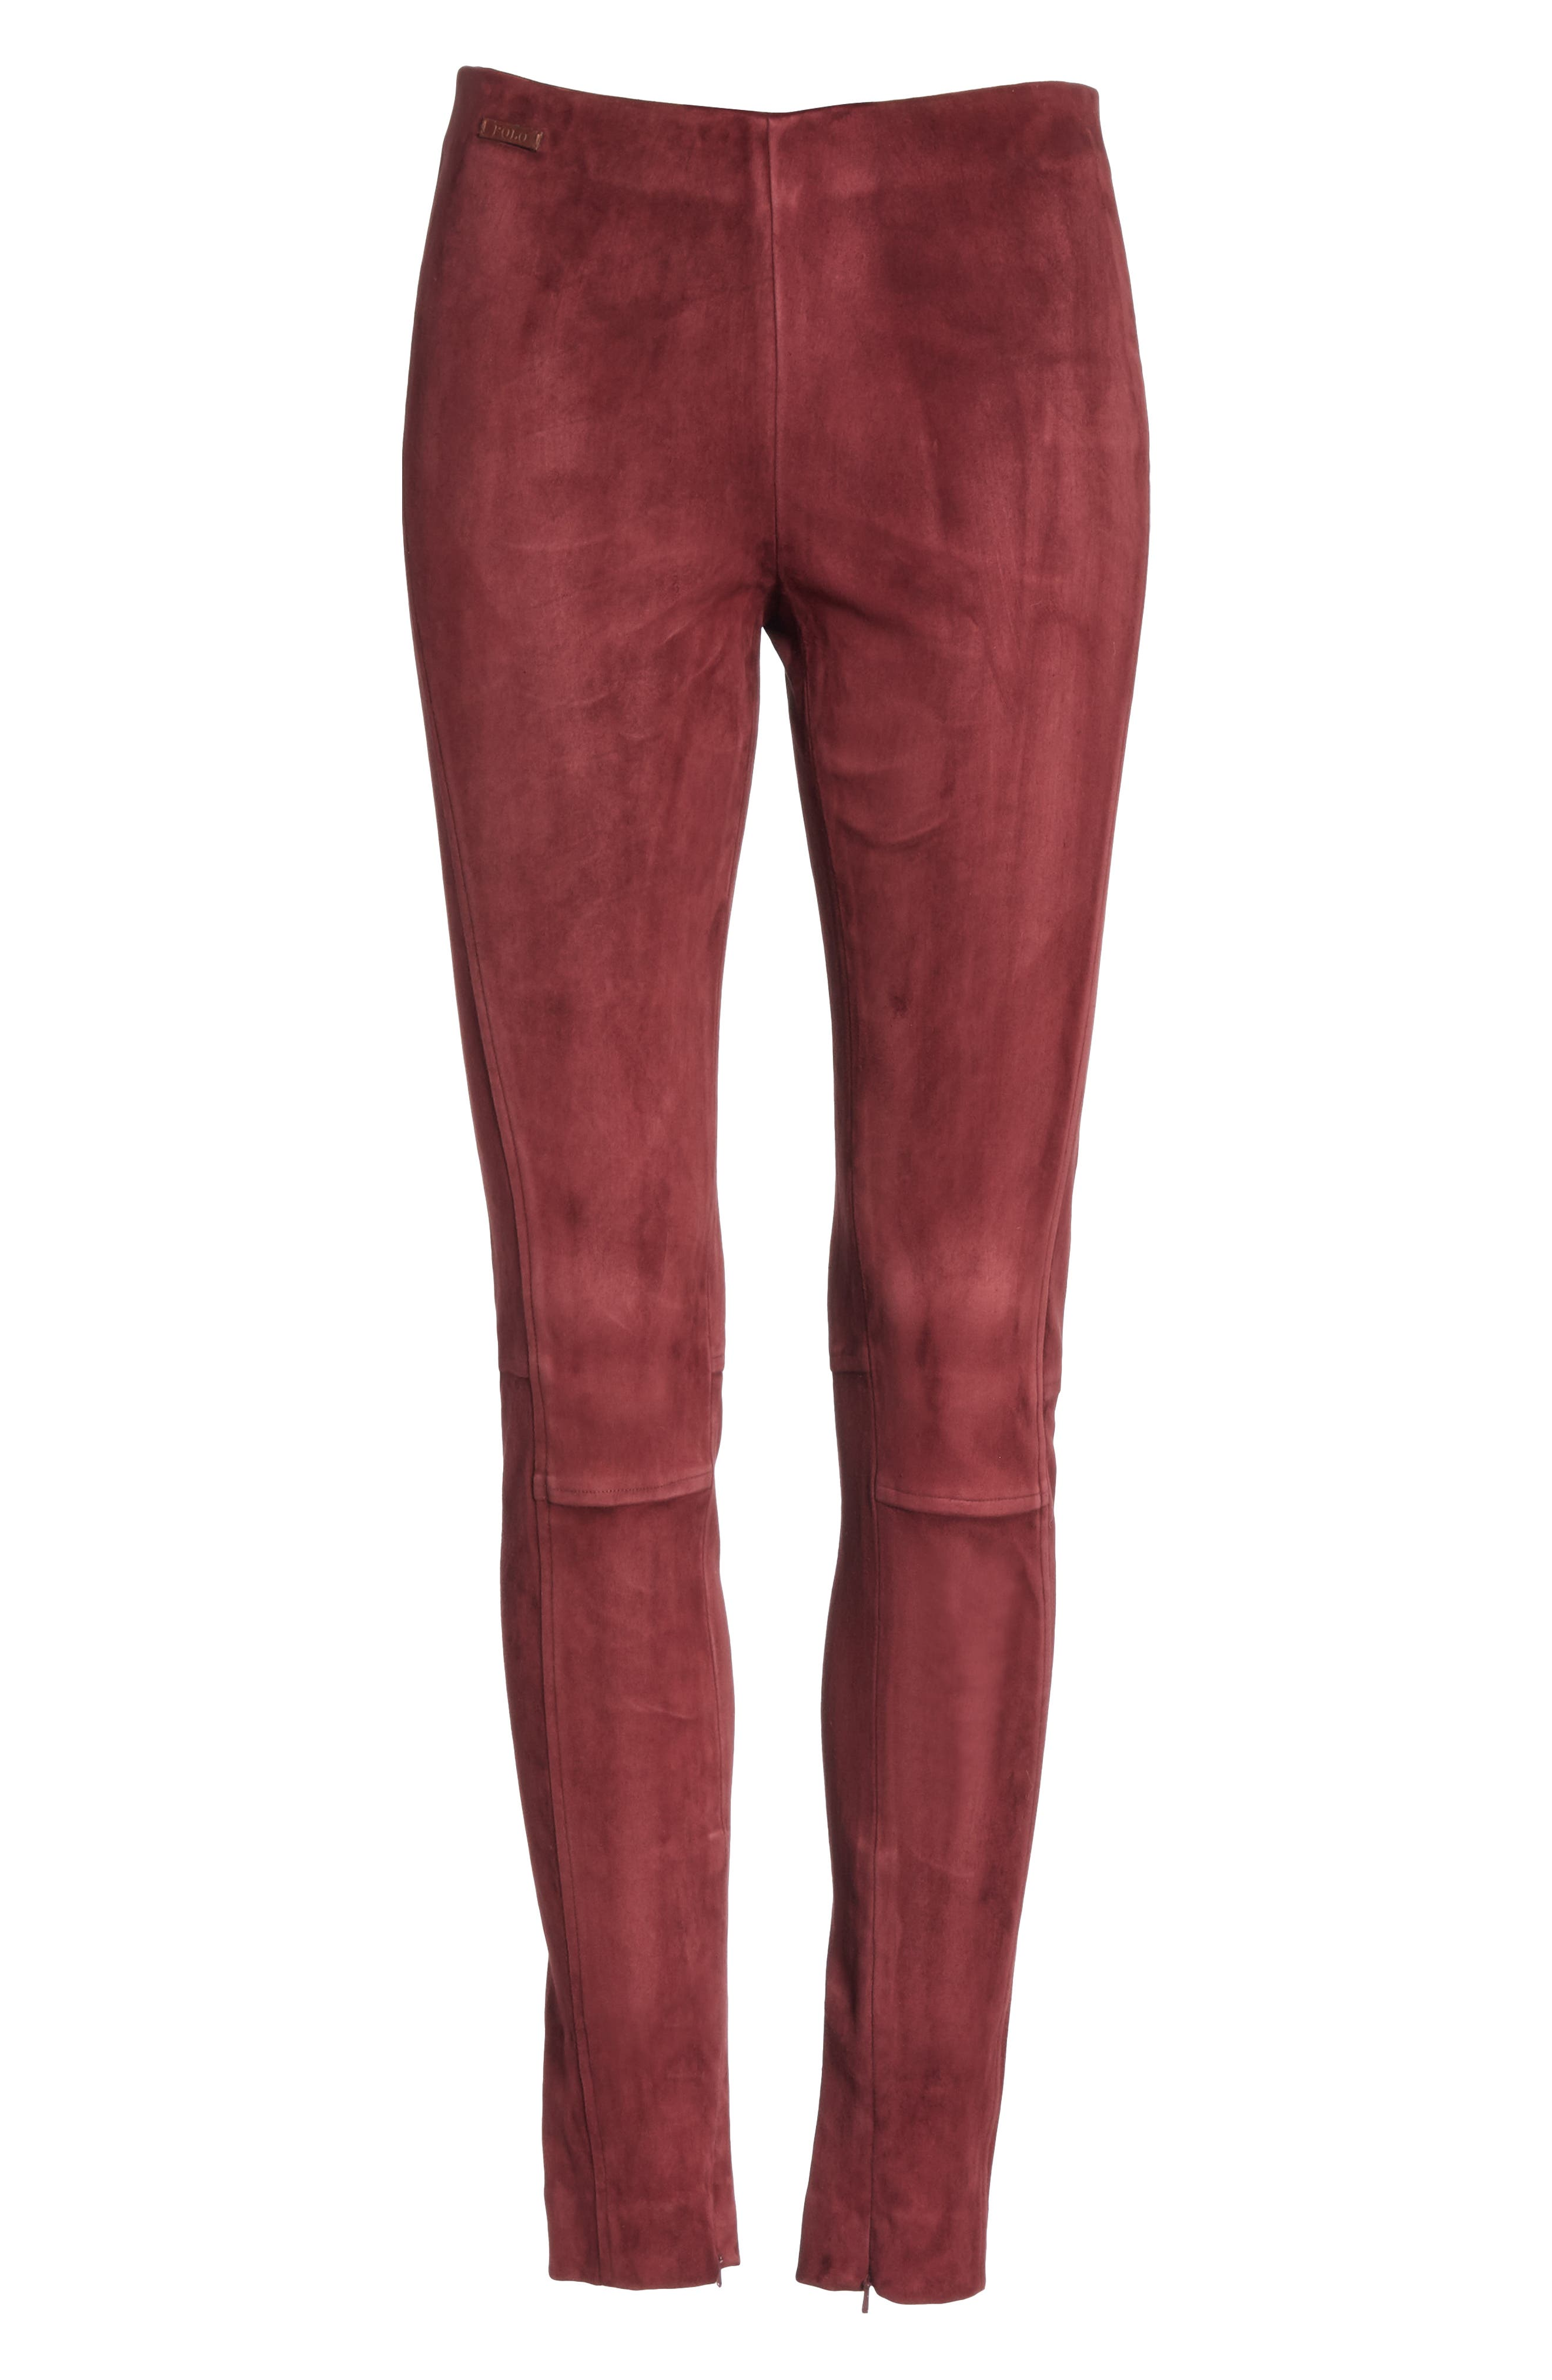 POLO RALPH LAUREN,                             Pull-On Skinny Suede Pants,                             Alternate thumbnail 6, color,                             930